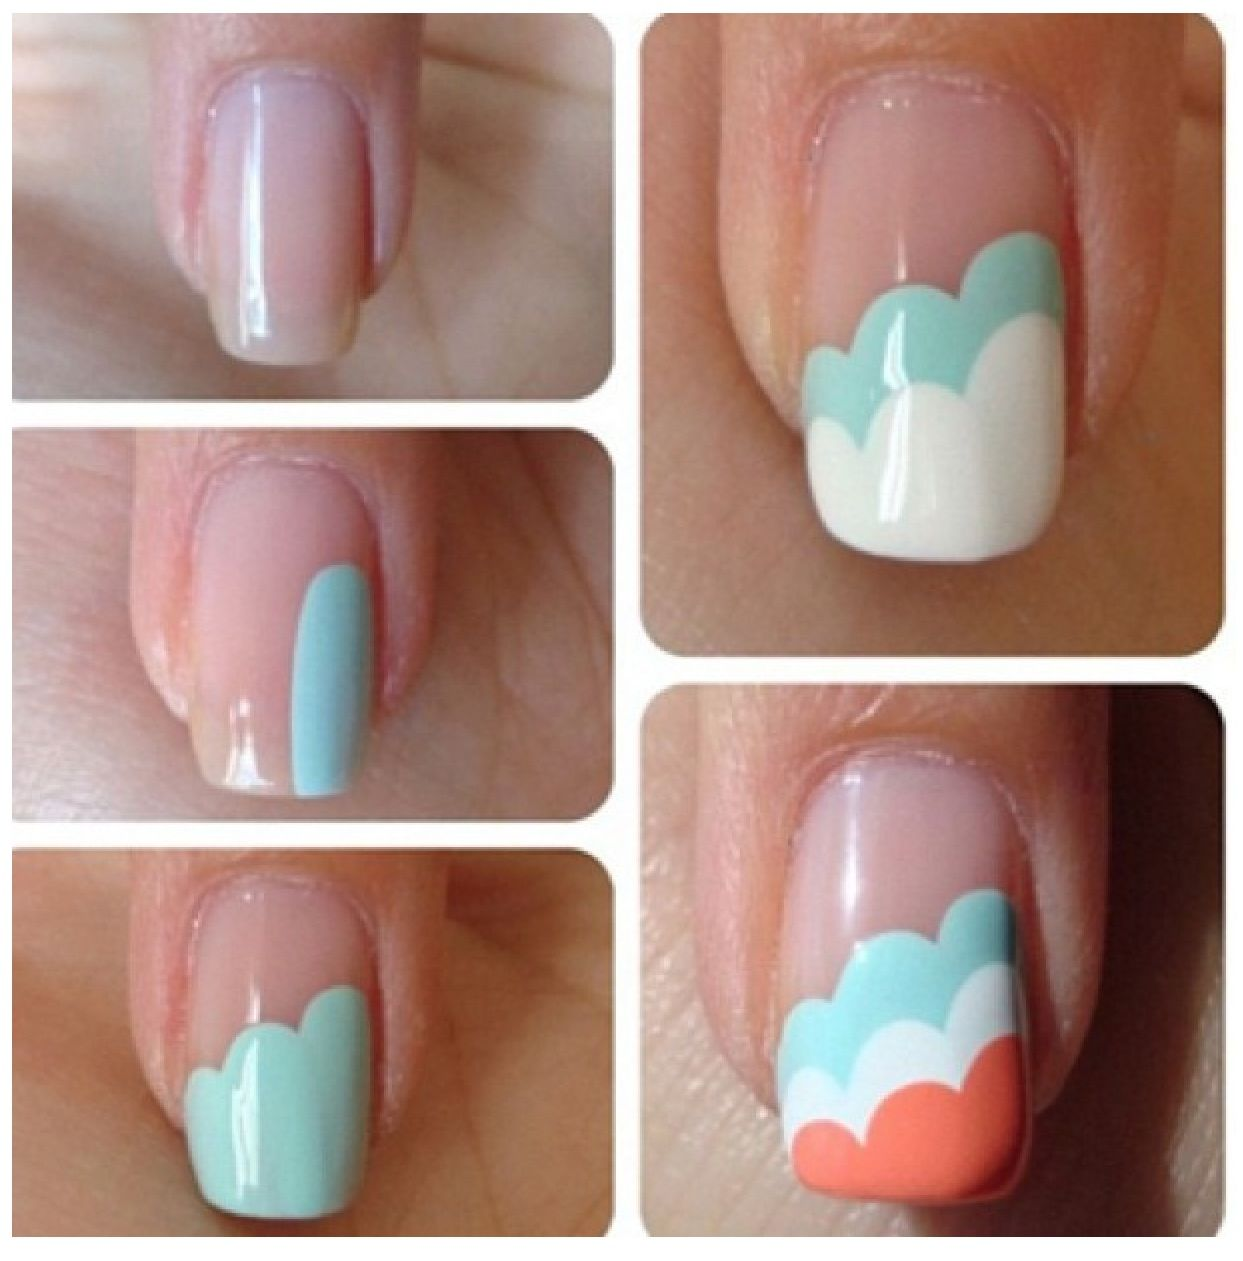 Clouds Are Simple And Pretty Step By Nail Art Tutorials Perfect For Beginners Anleitungen Fur Anfanger